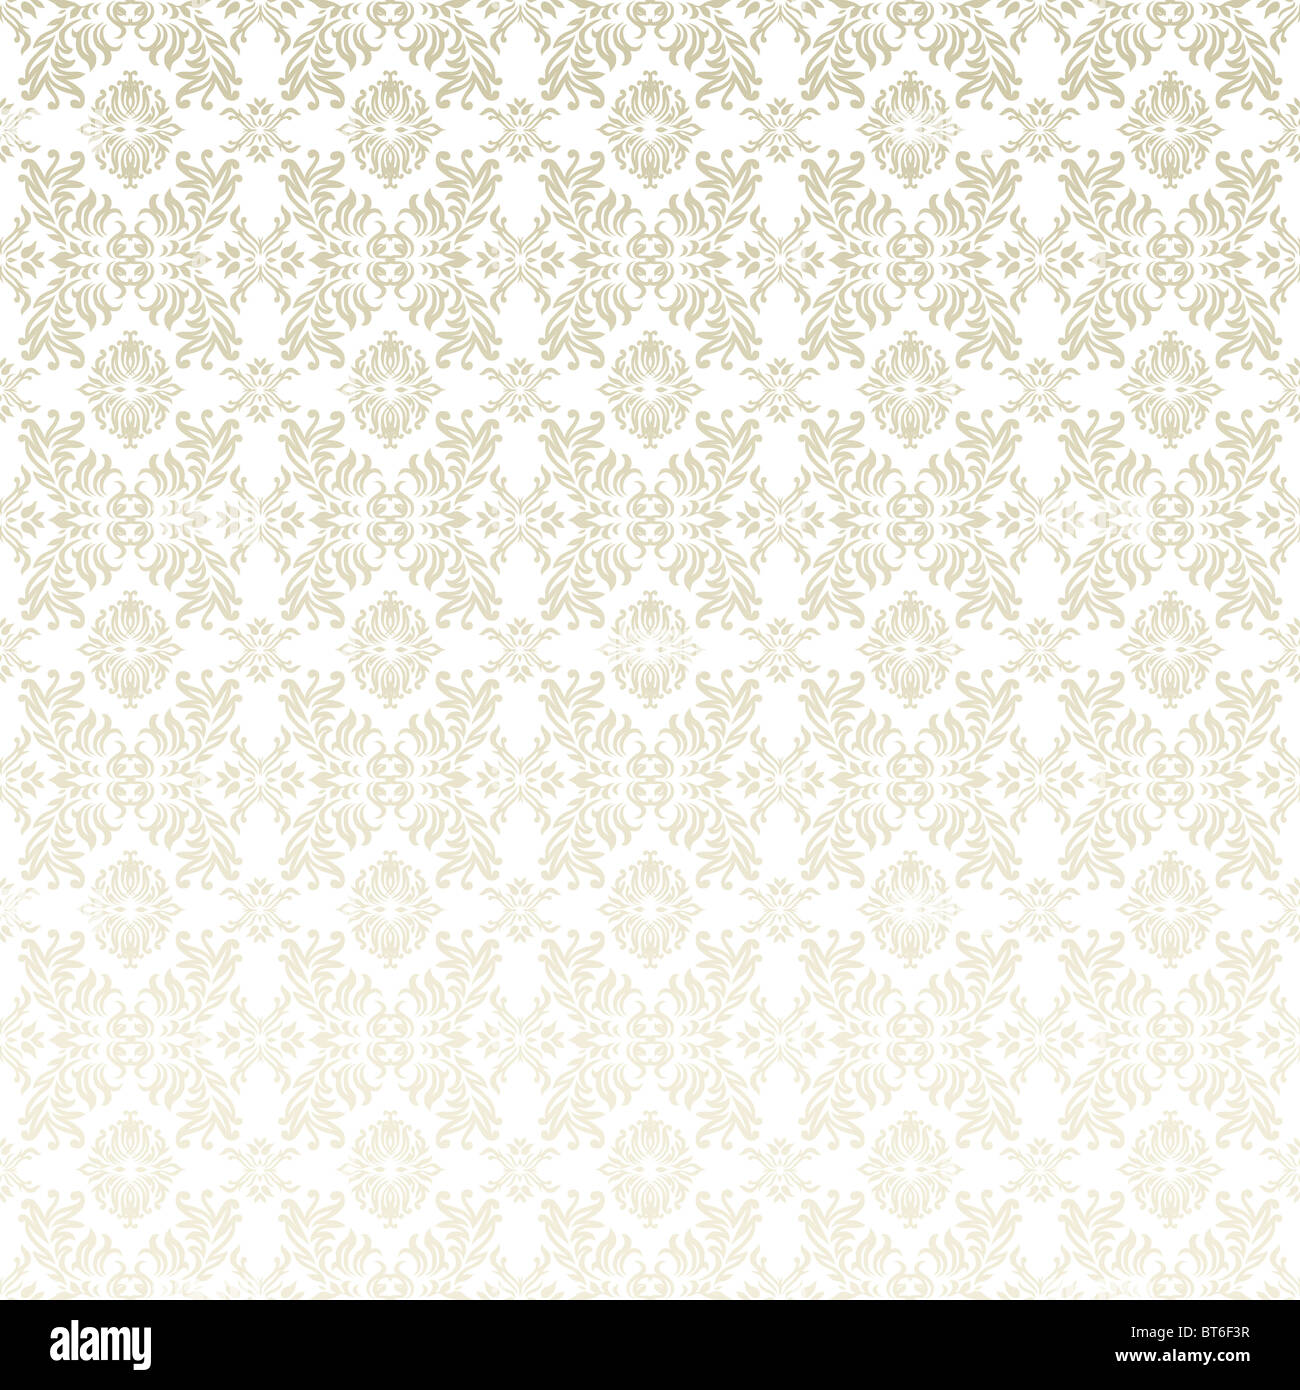 Classic Gothic Floral Wallpaper Background Pattern In White And Beige